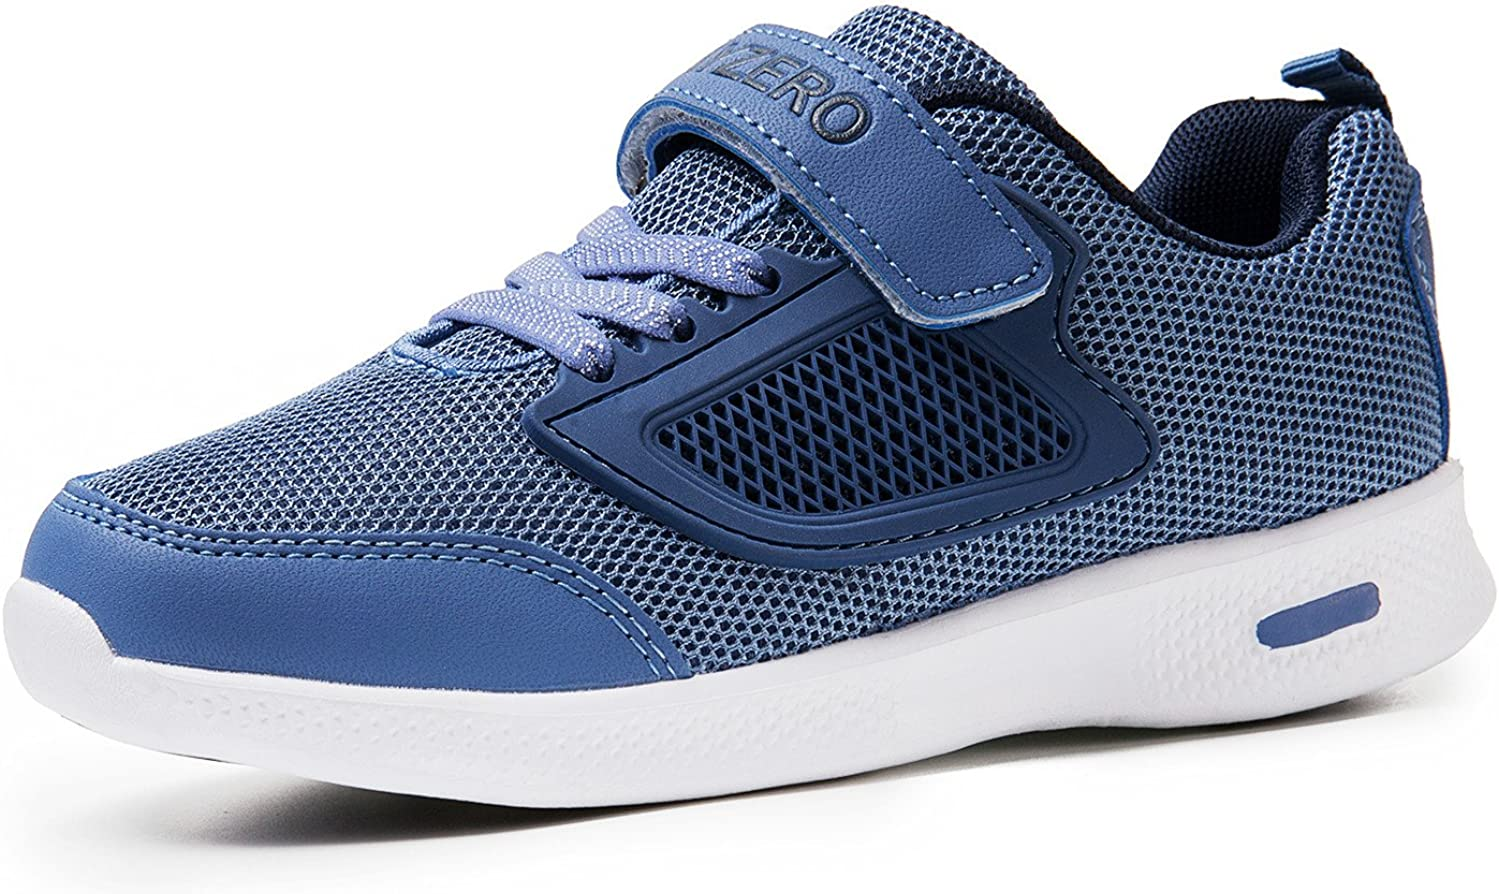 Vivay Kids Tennis Shoes Boys Sneakers Athletic Running Shoes for Girls Toddler//Little Kid//Big Kid